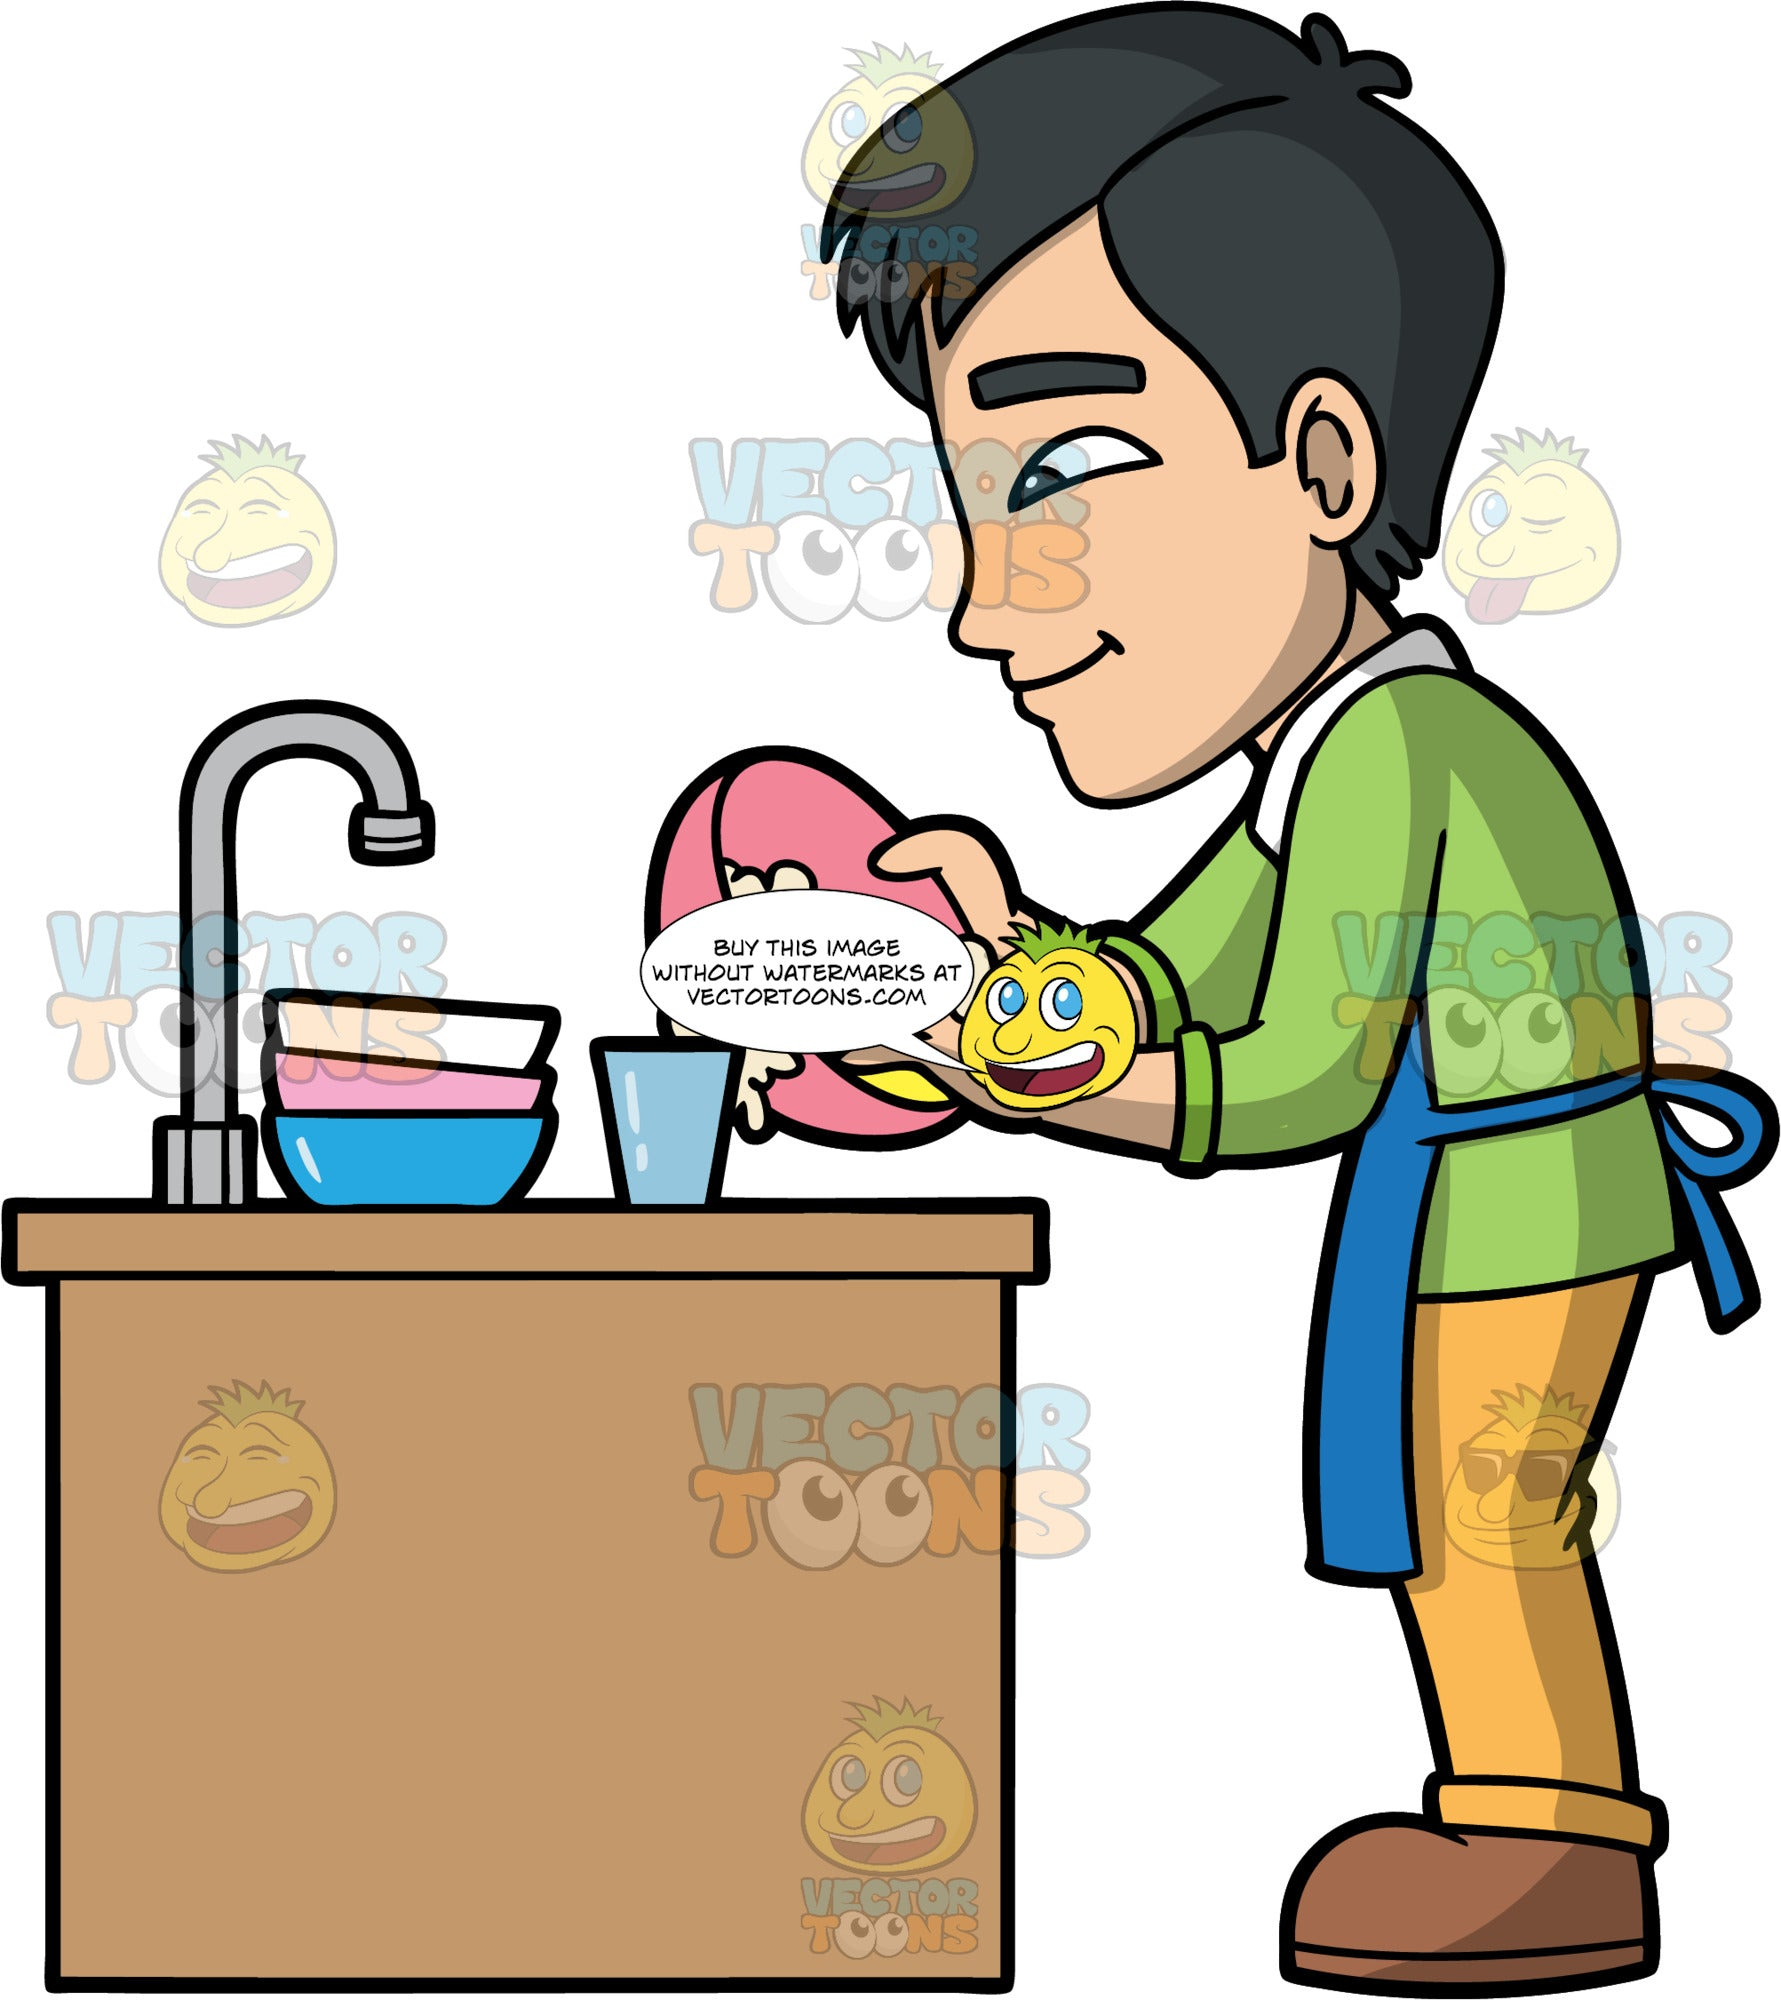 Kevin Washing A Bowl In The Sink. An Asian man wearing yellow pants, a green shirt, brown shoes, and a blue apron, washing a bowl with a soapy sponge